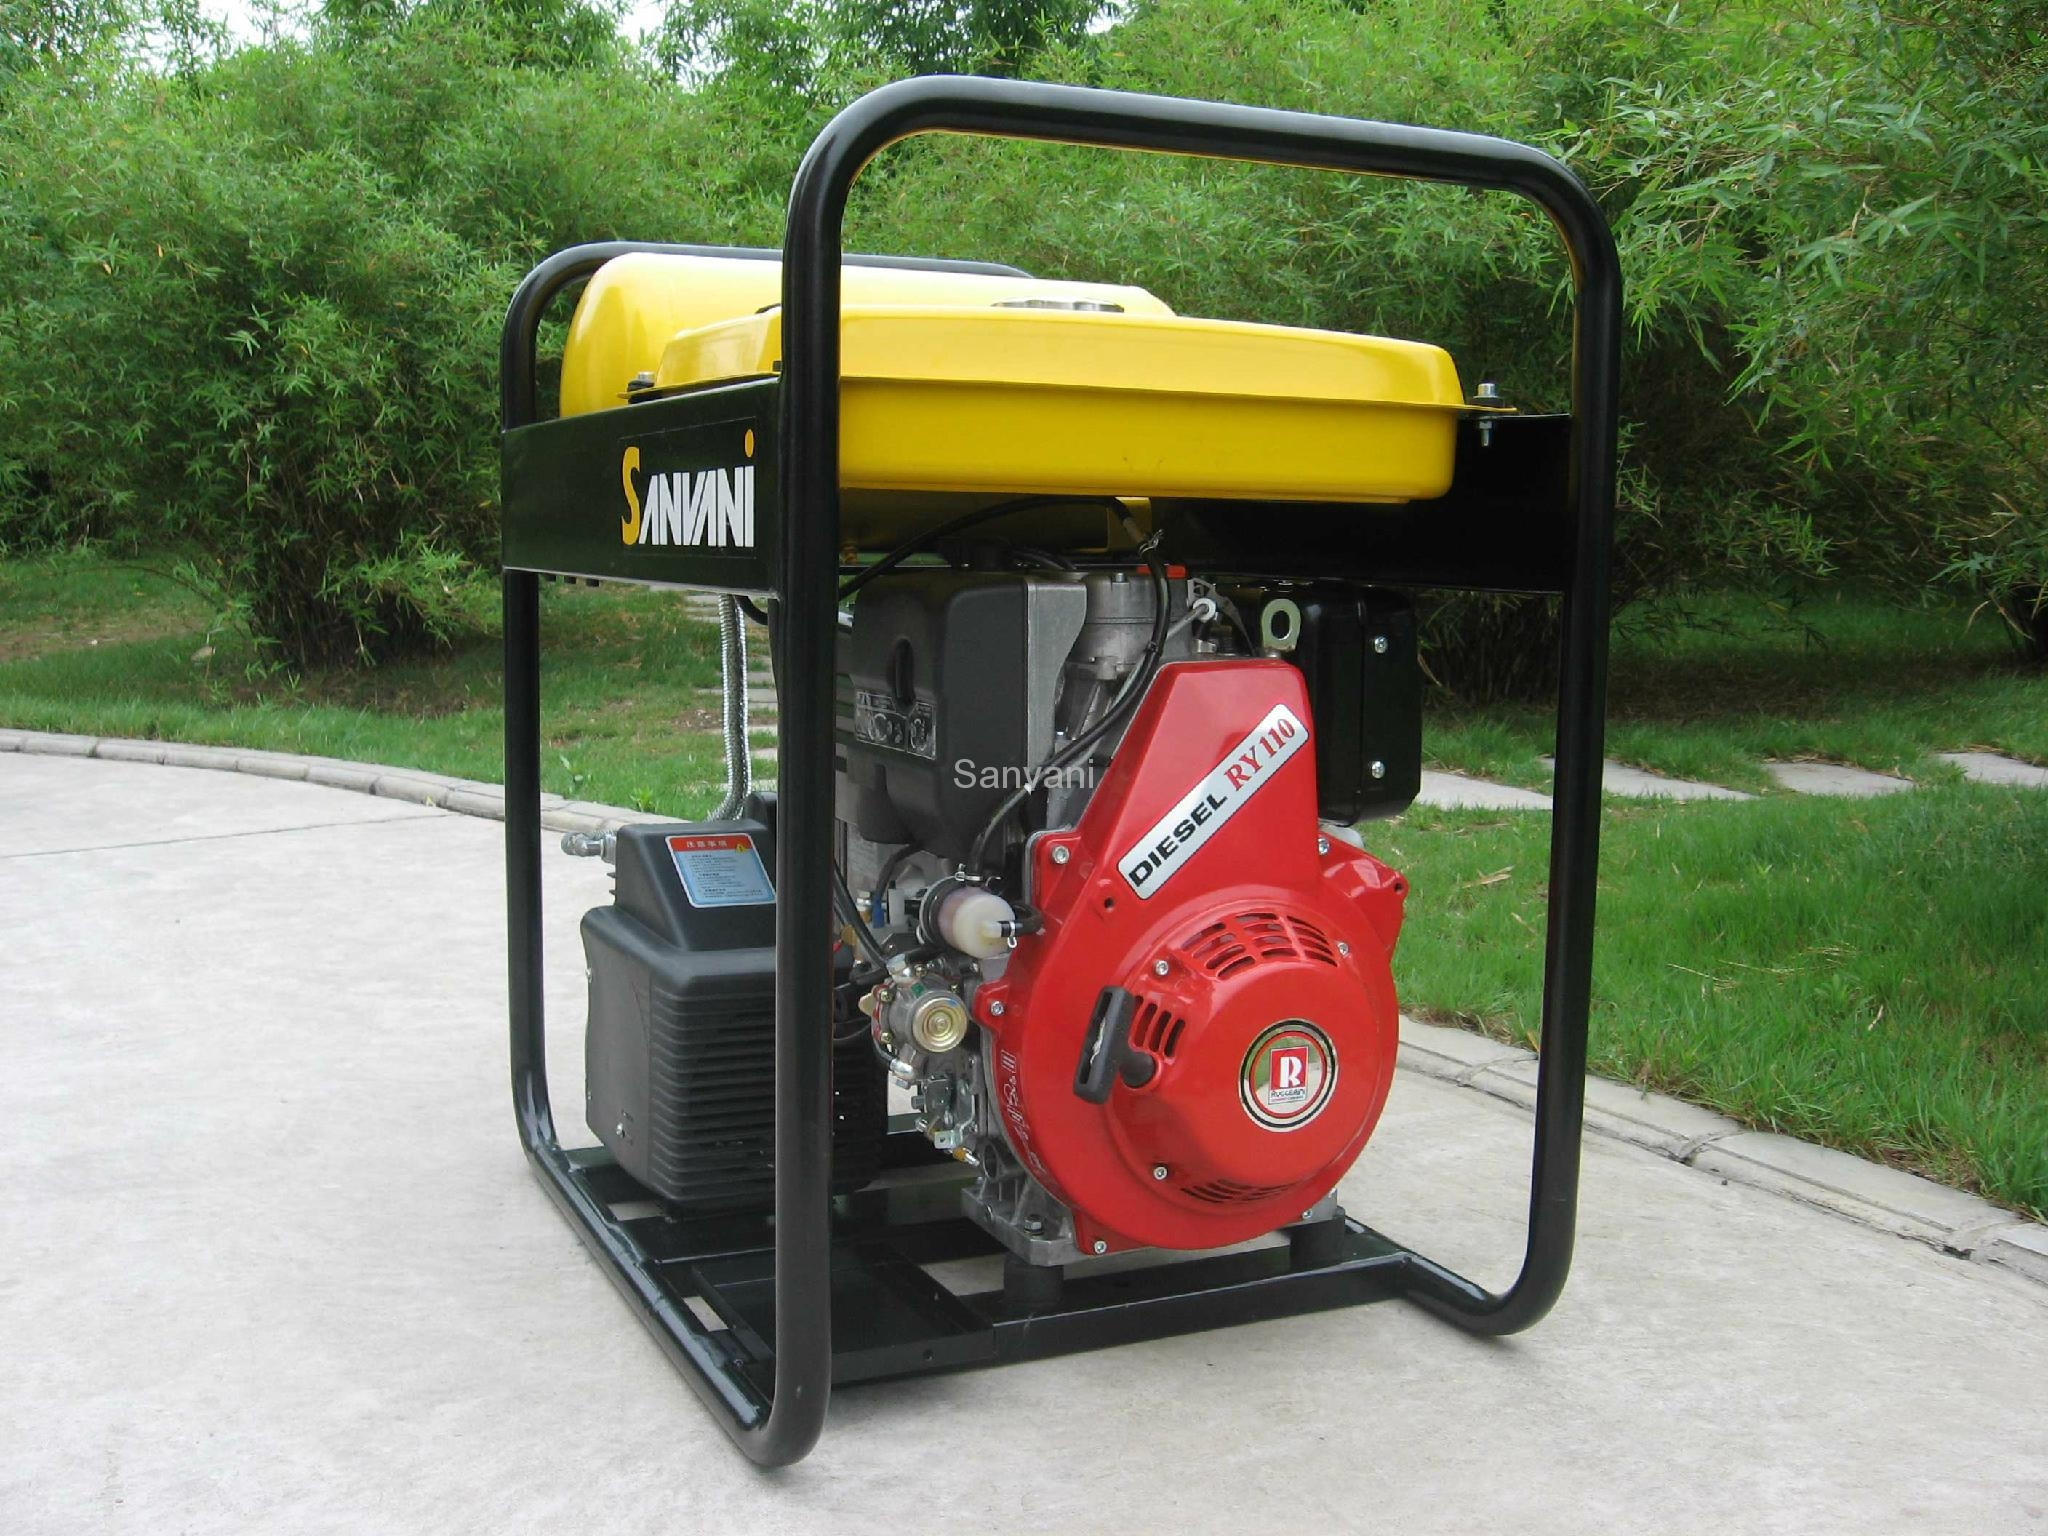 Ruggerini Air Cooled Diesel Engine Sanvani China Manufacturer